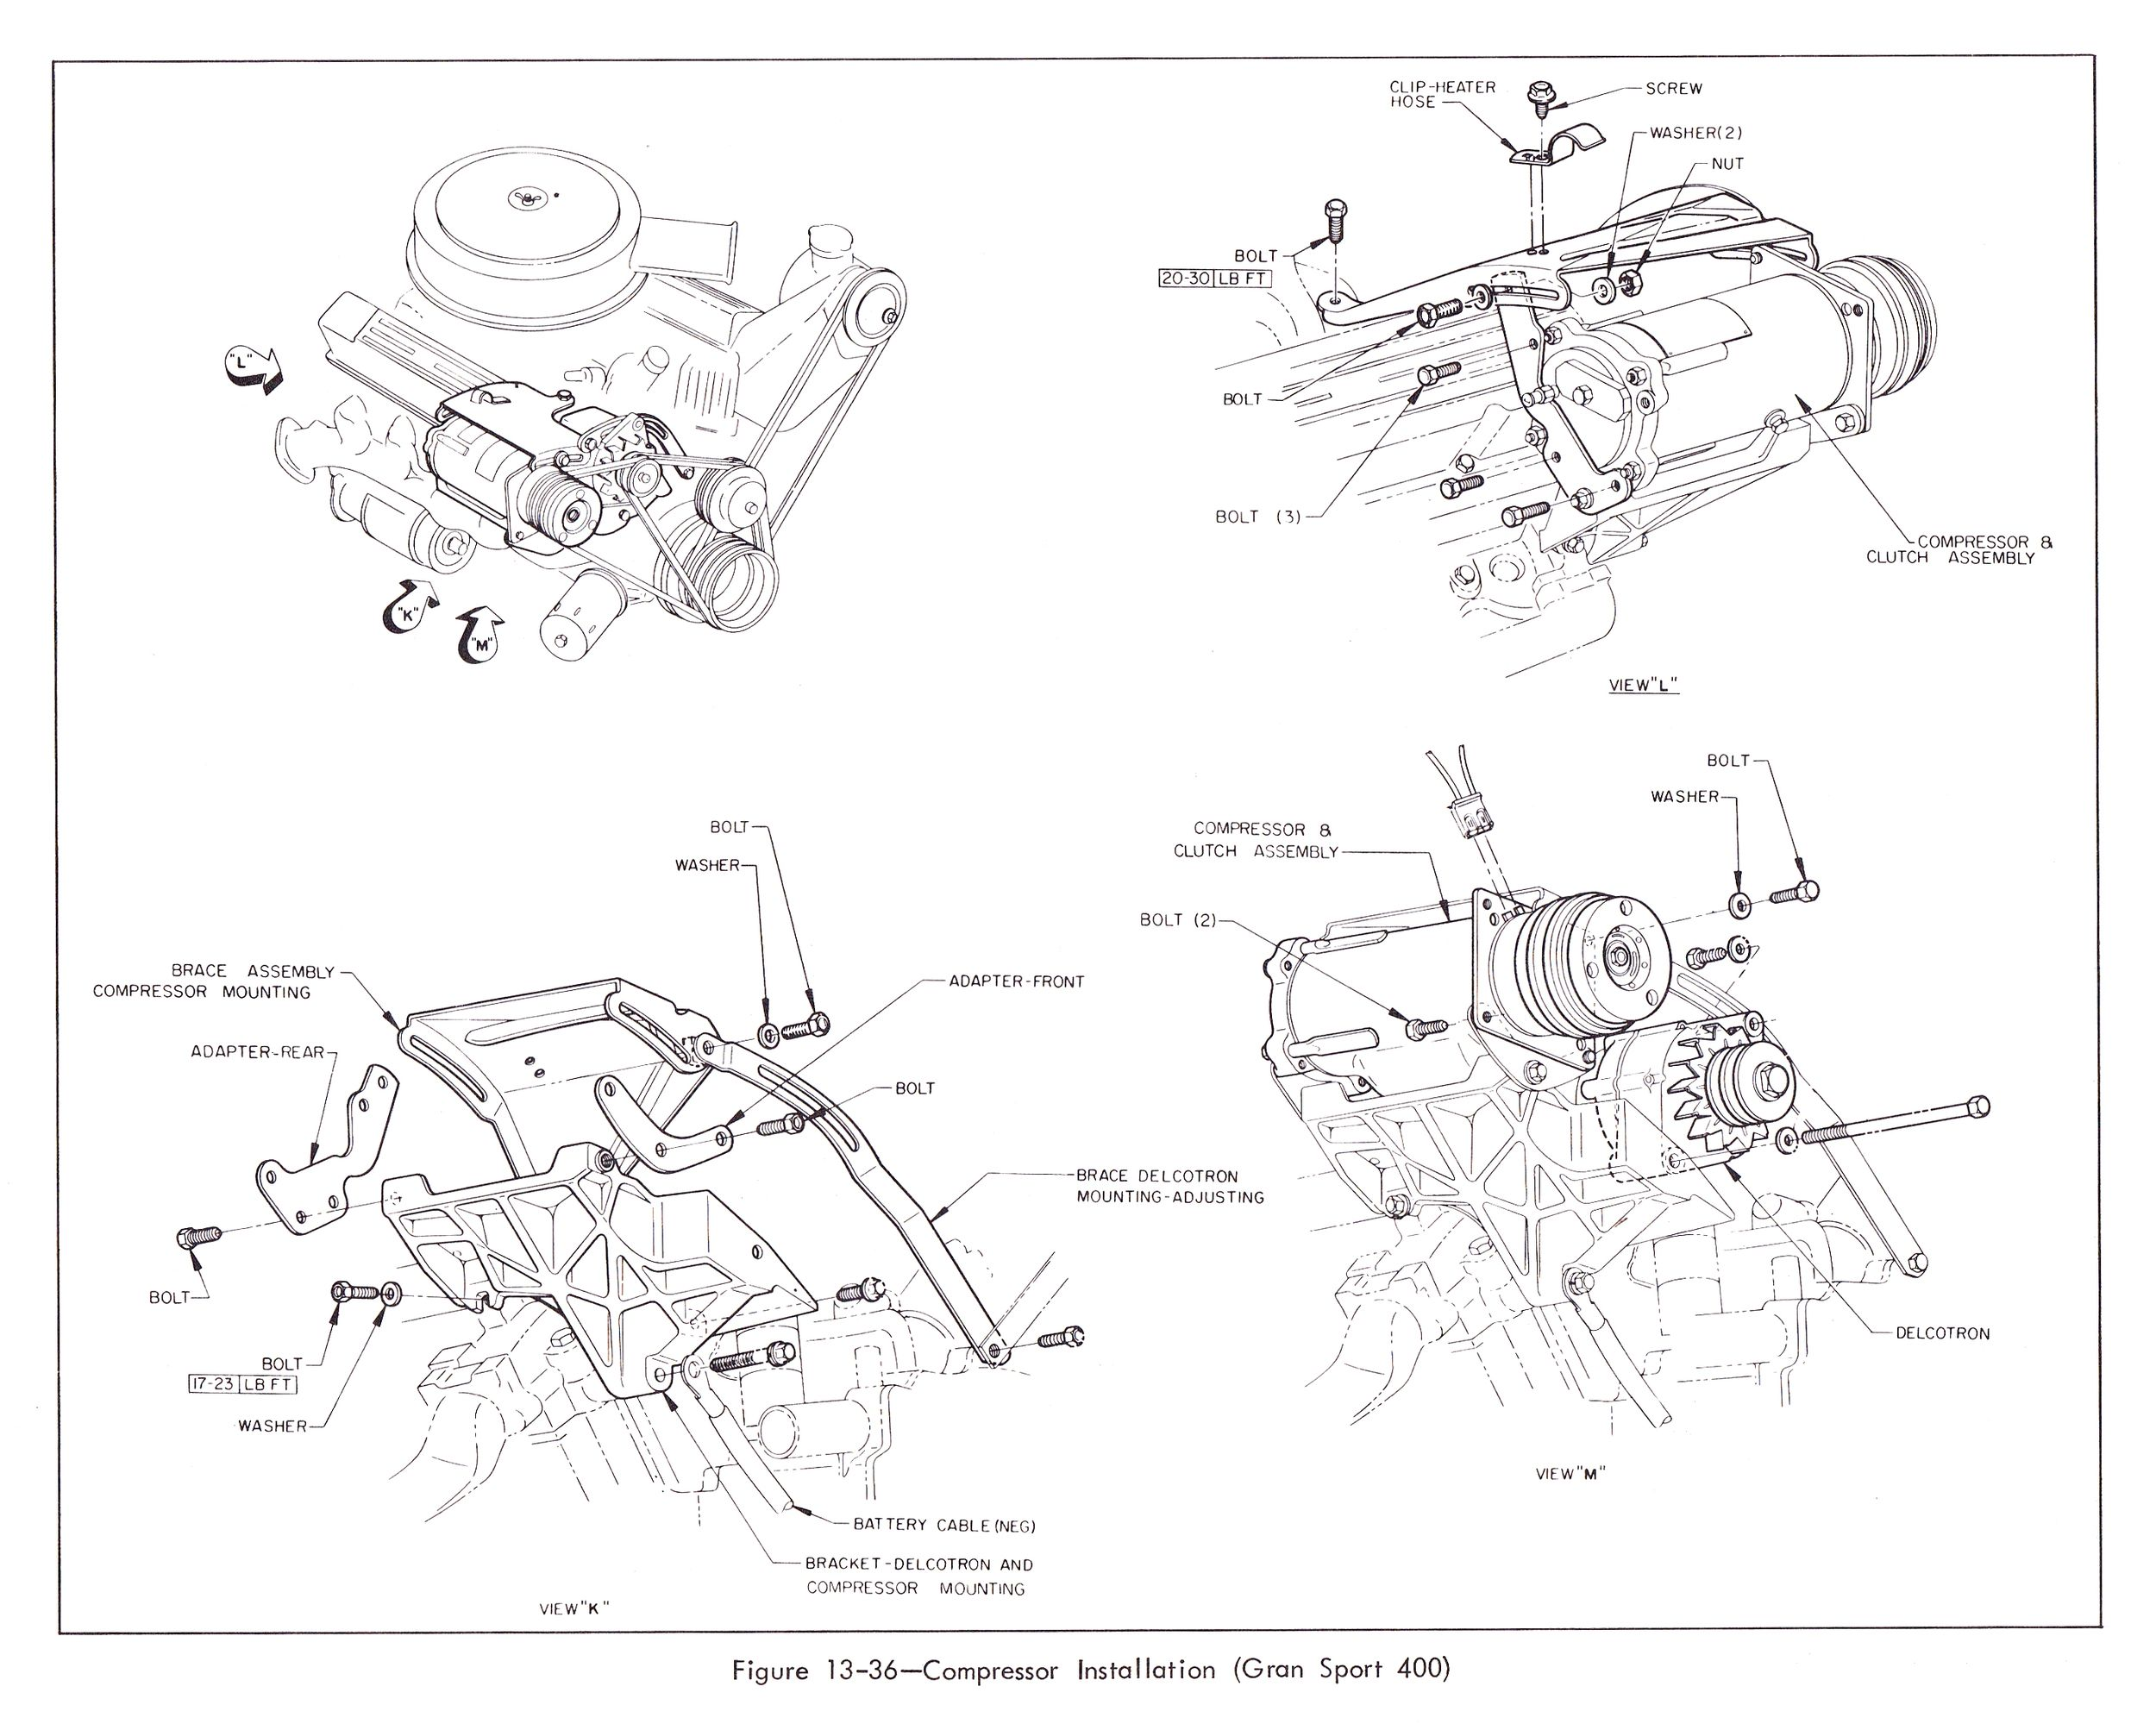 1968 chevelle wiring diagram car stereo a central vacuum database why factory c and i aren t meant to be hemmings daily access control buick